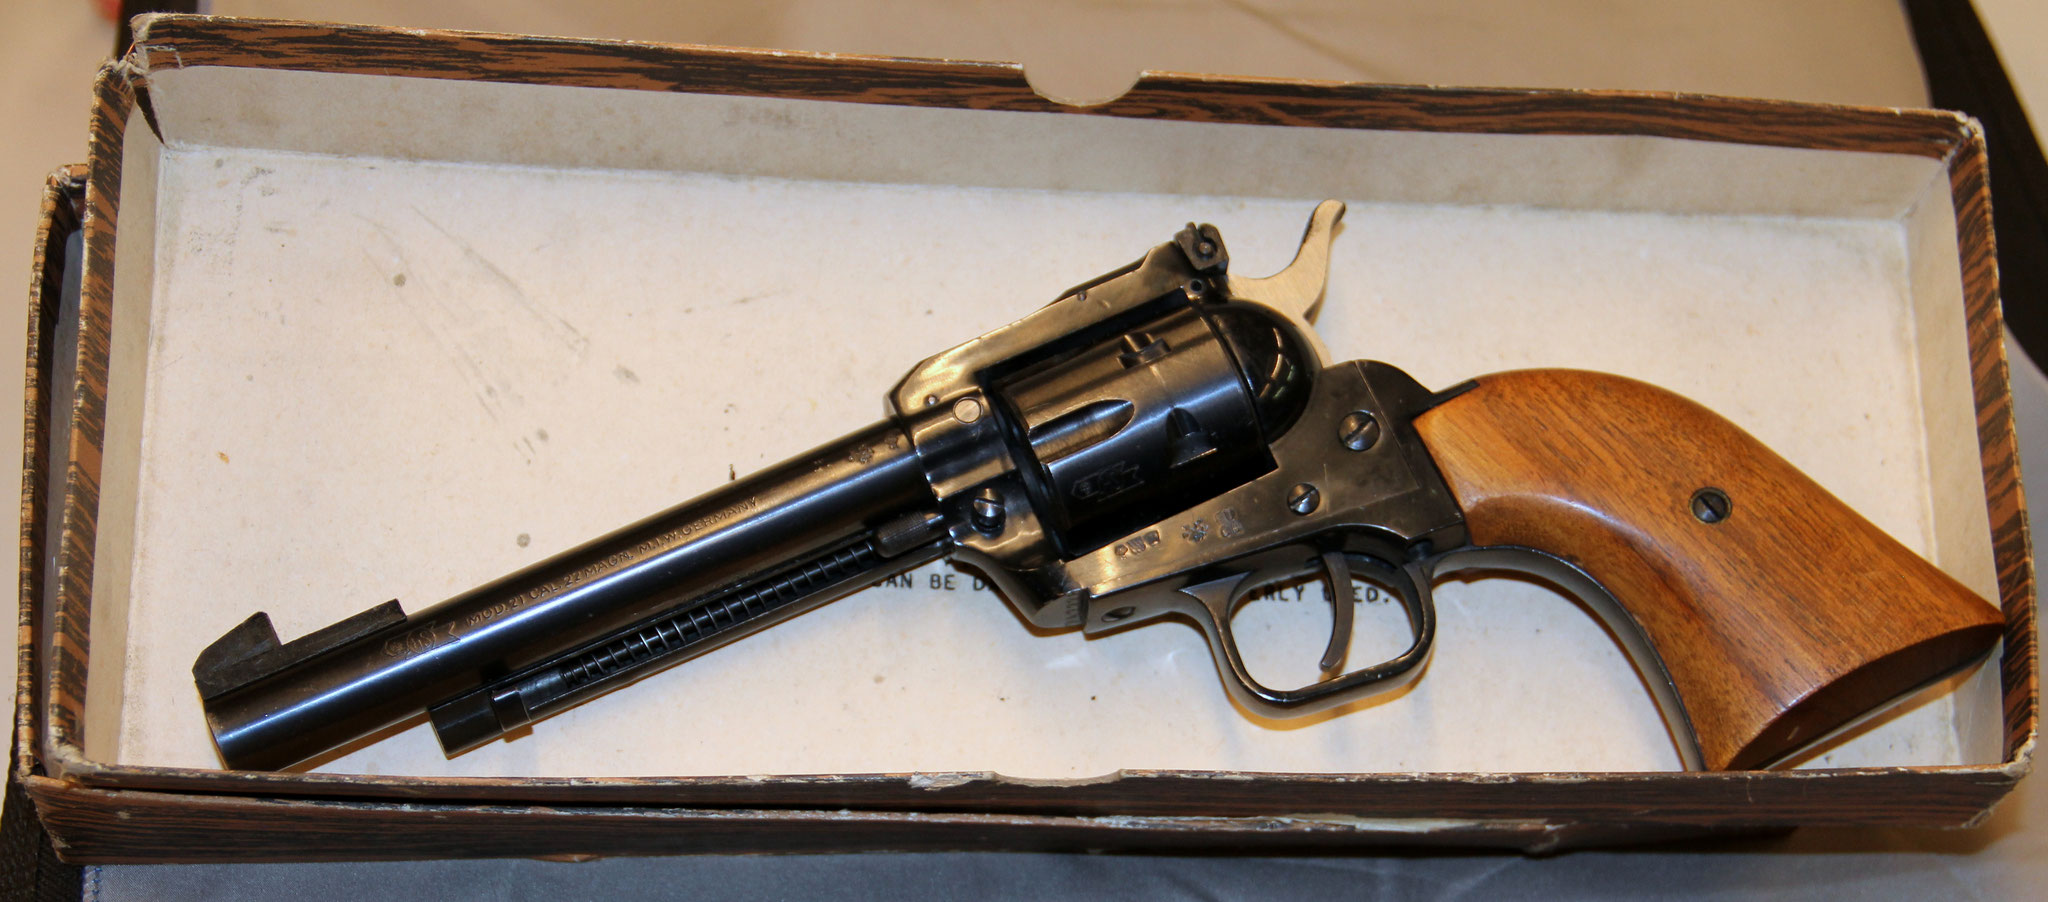 HS model 21, met doos. Cert.no. 26 € 350,-